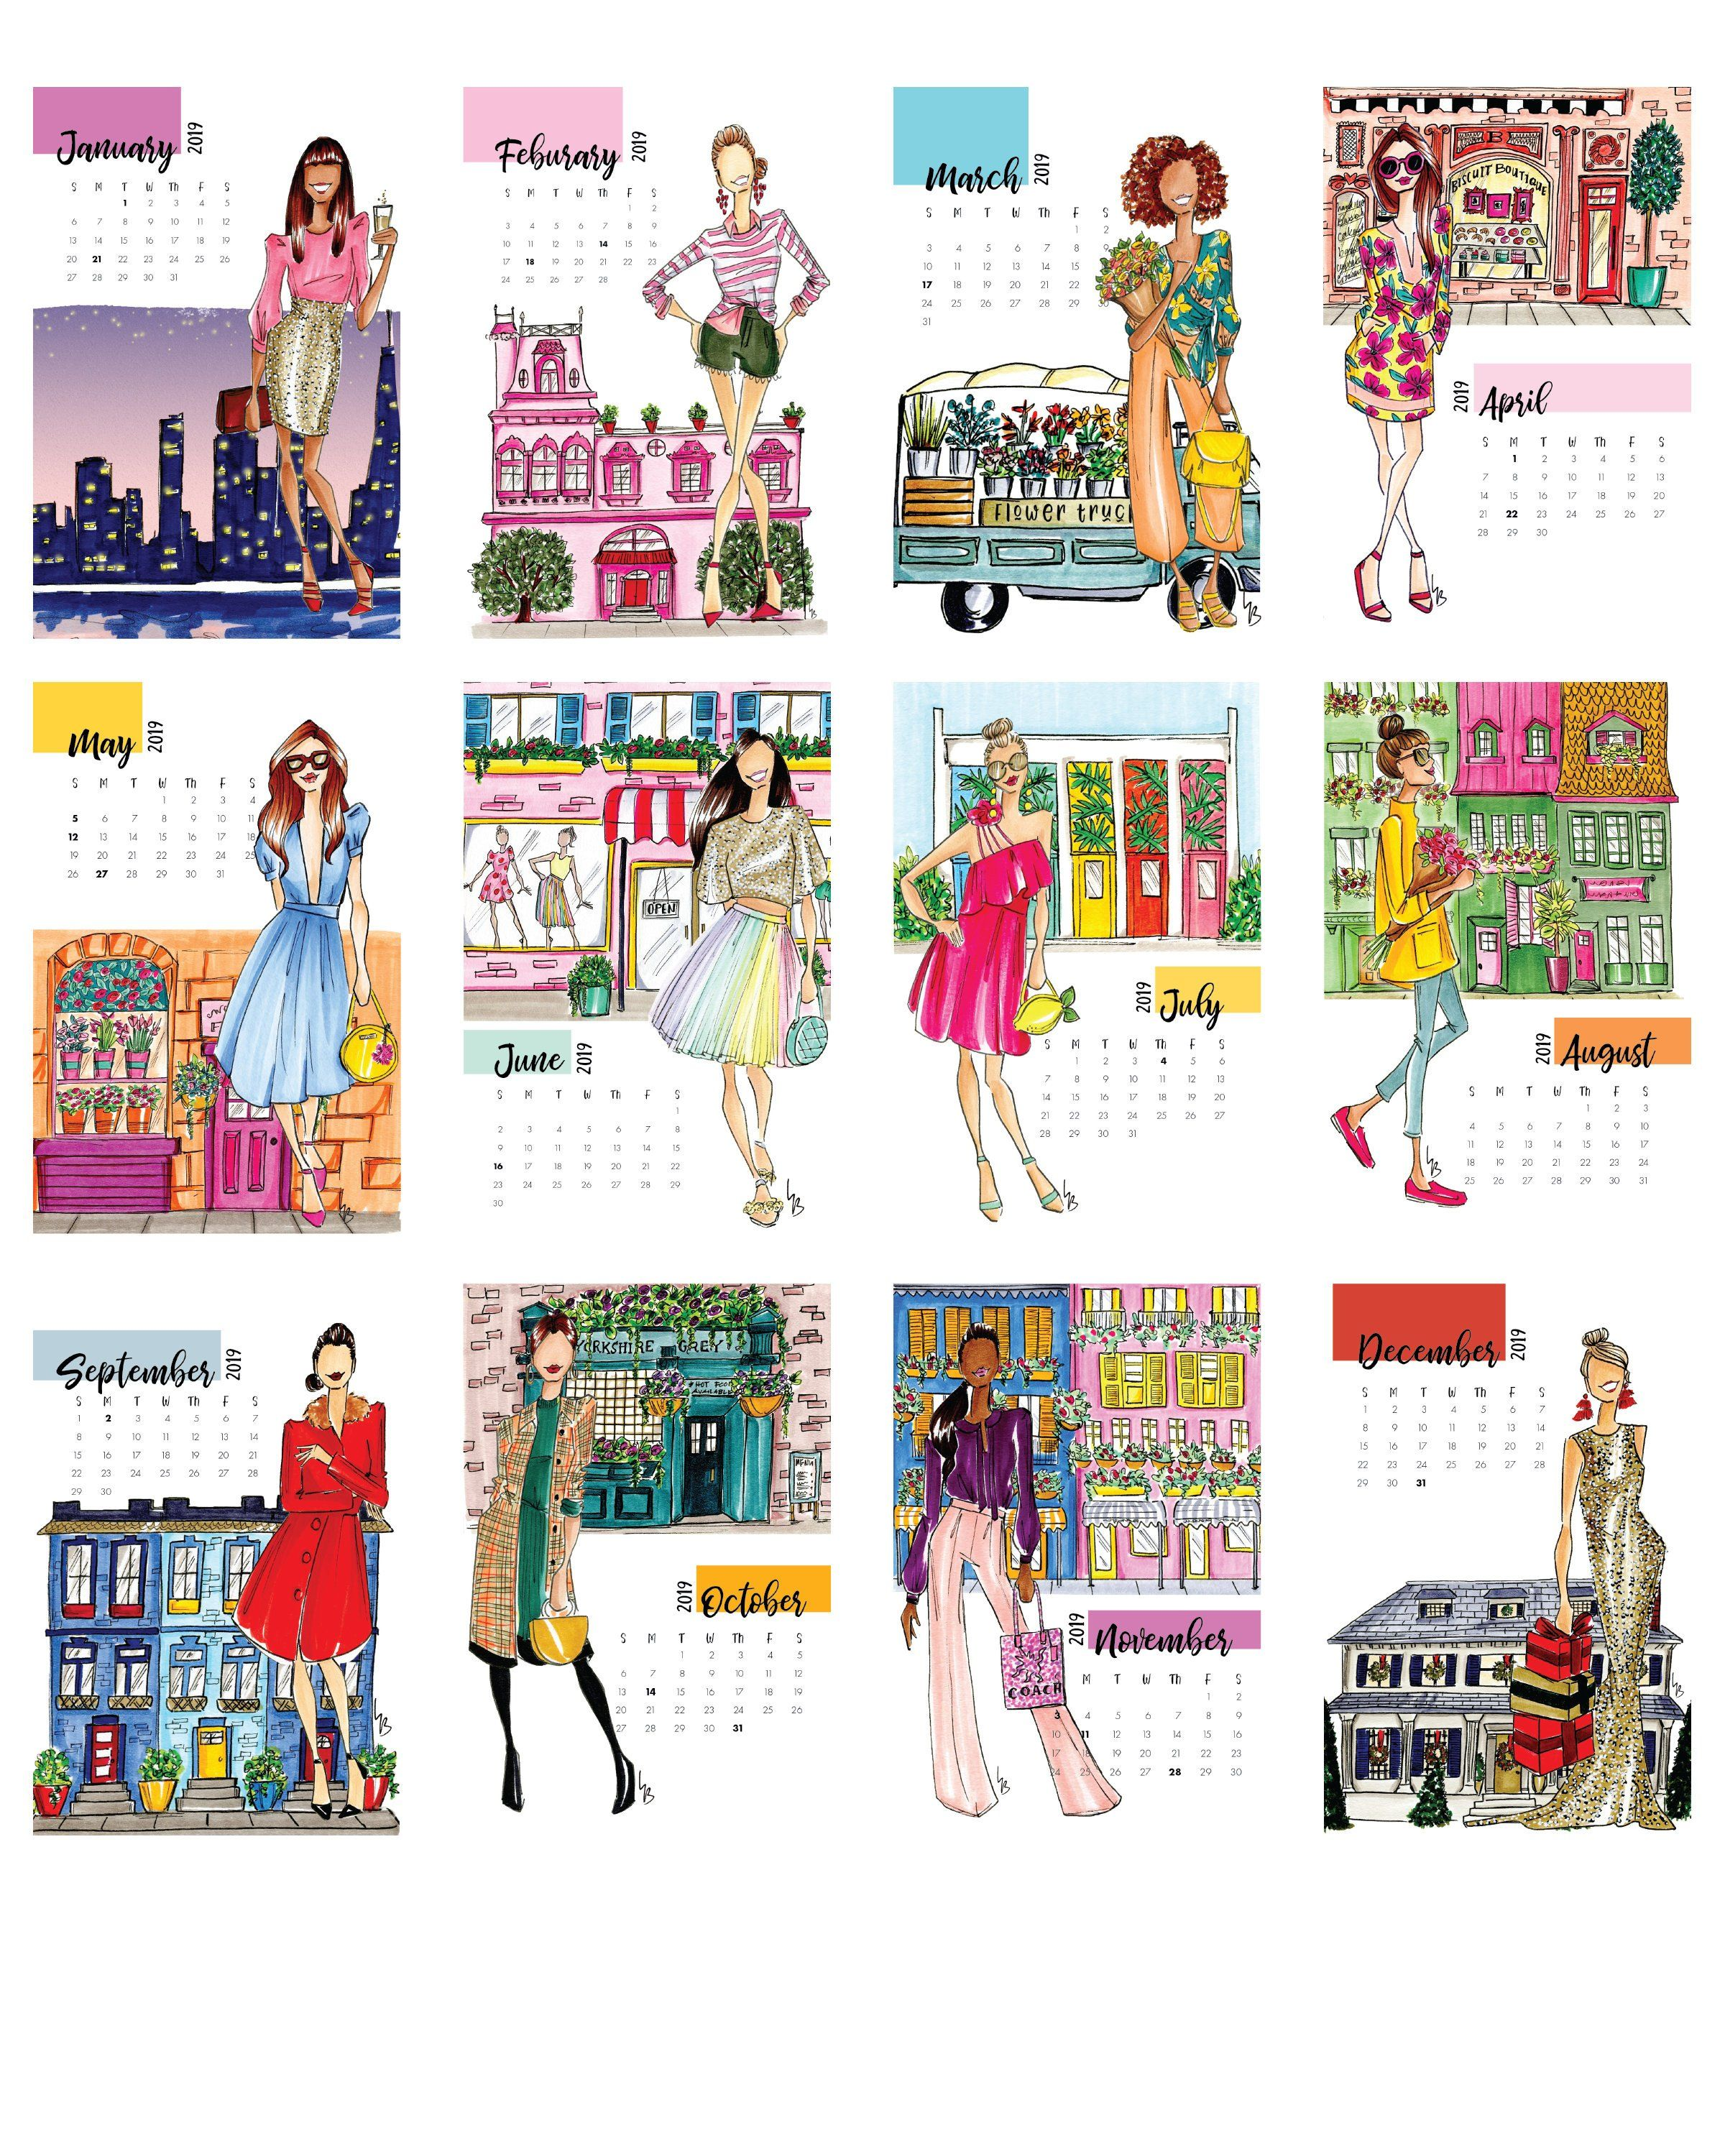 2019 Desk Calendar Fashion Calendar Illustration Calendar Fashion